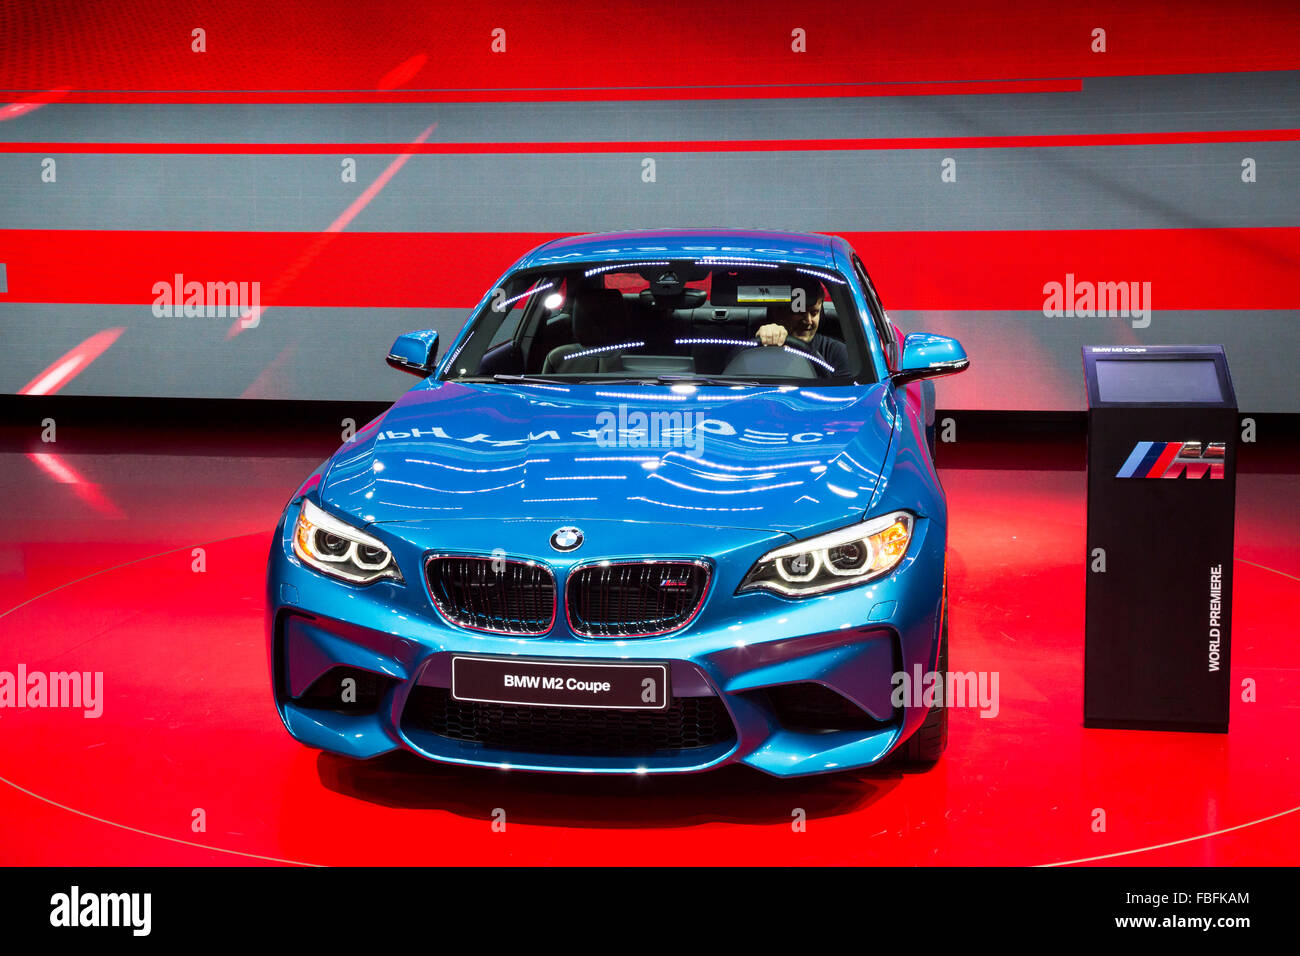 Detroit, Michigan - The BMW M2 coupe on display at the North American International Auto Show. - Stock Image